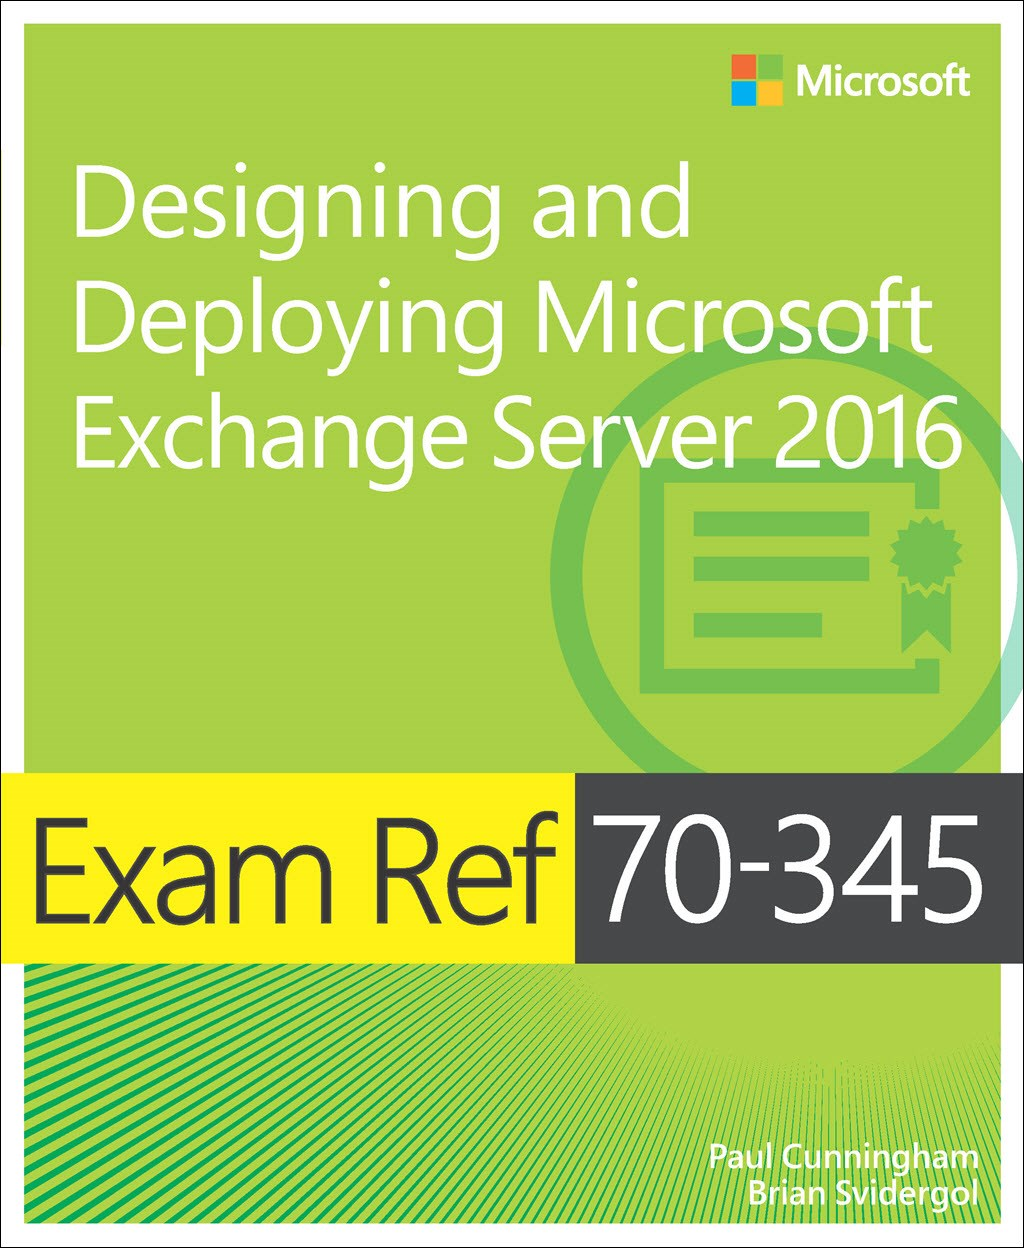 Exam Ref 70-345 Designing and Deploying Microsoft Exchange Server 2016